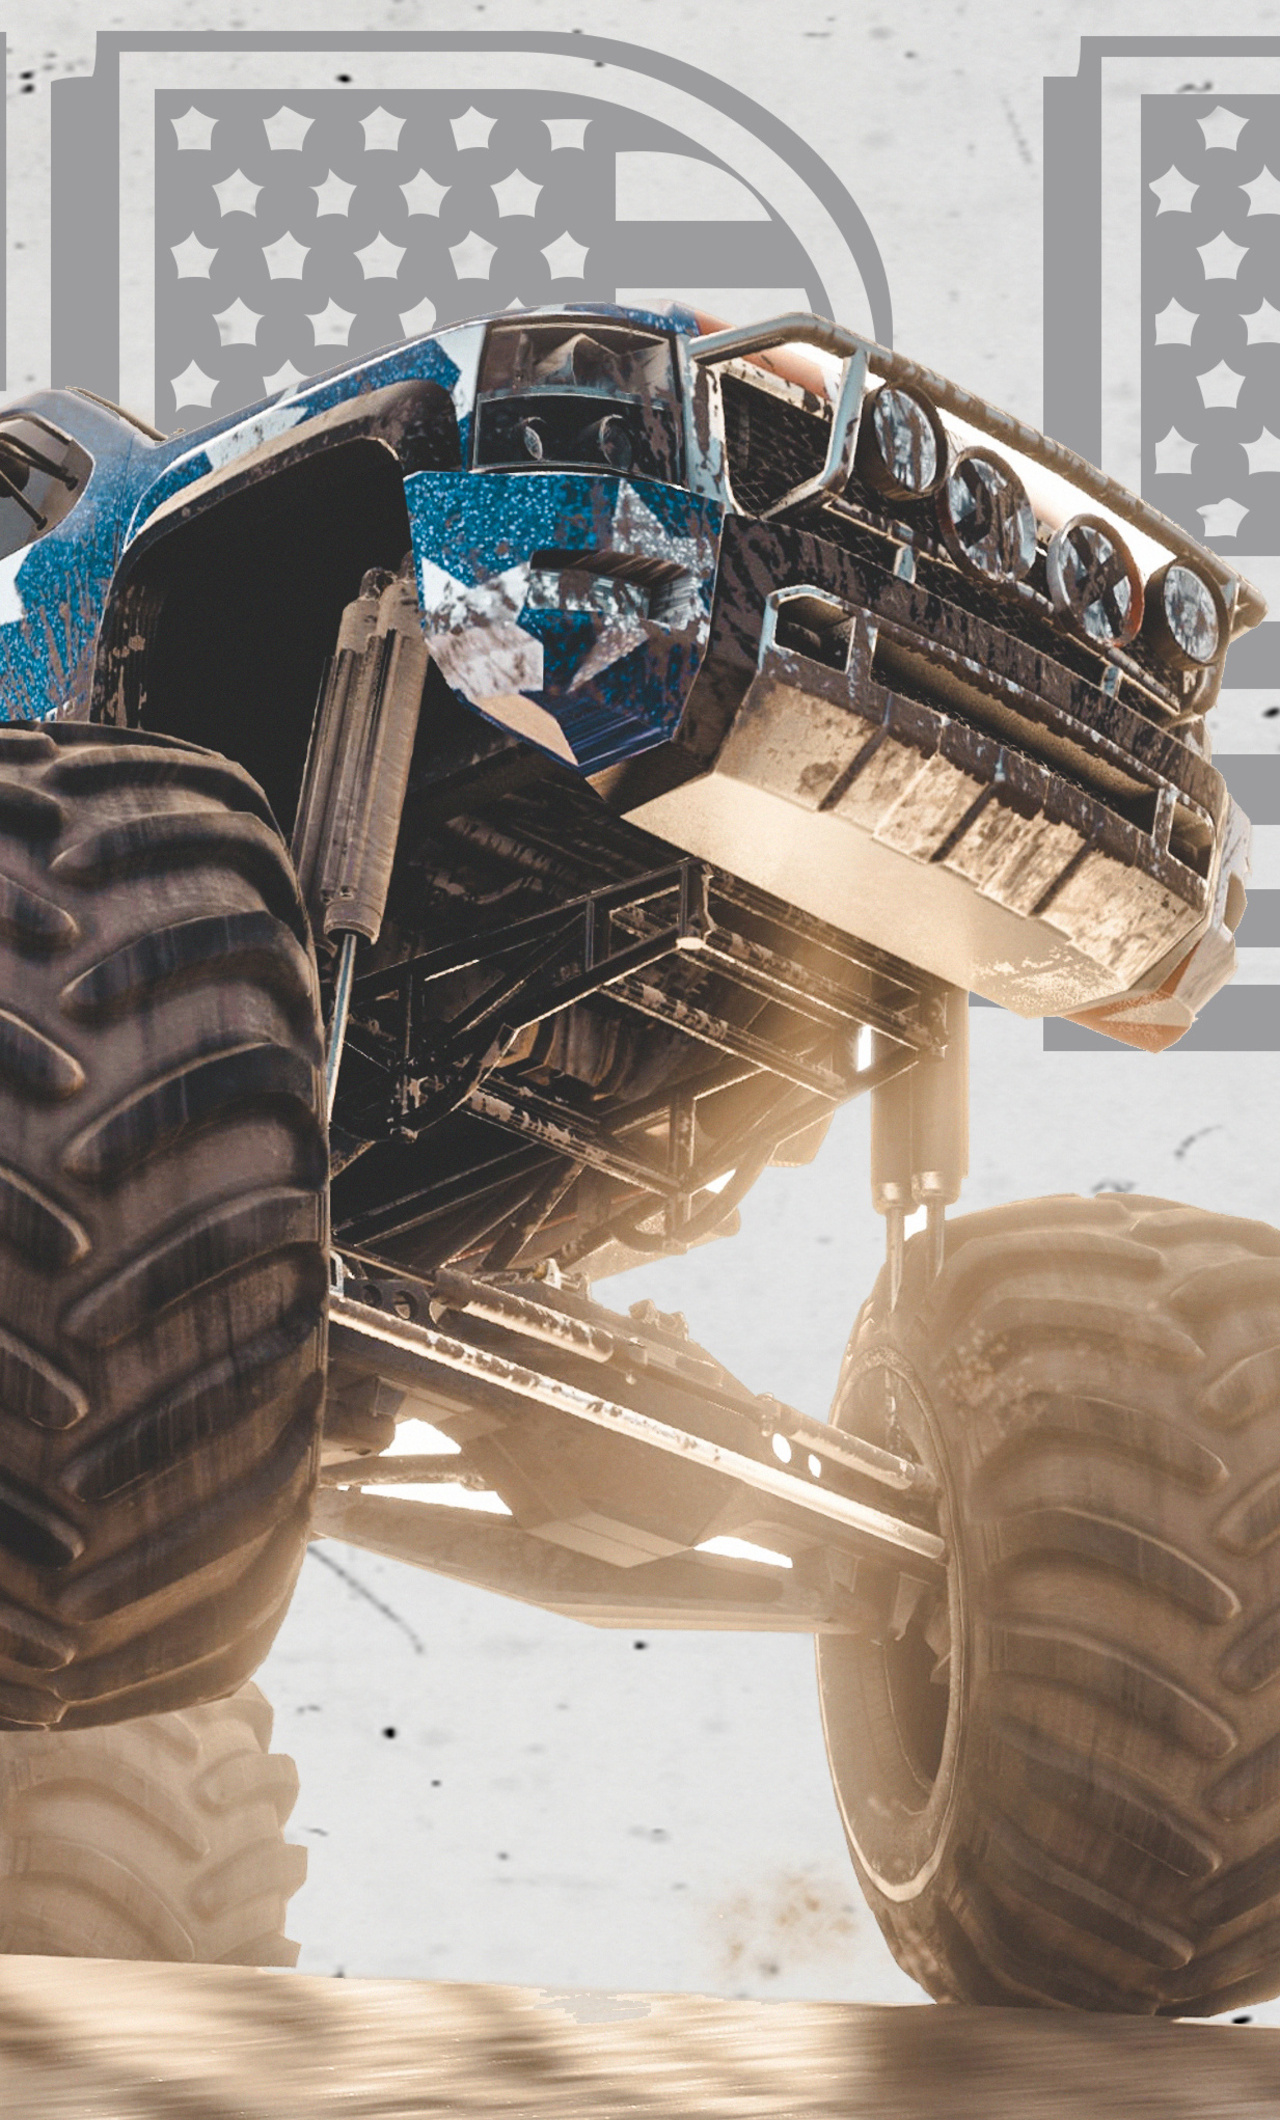 1280x2120 Monster Truck The Crew Iphone 6 Hd 4k Wallpapers Images Backgrounds Photos And Pictures